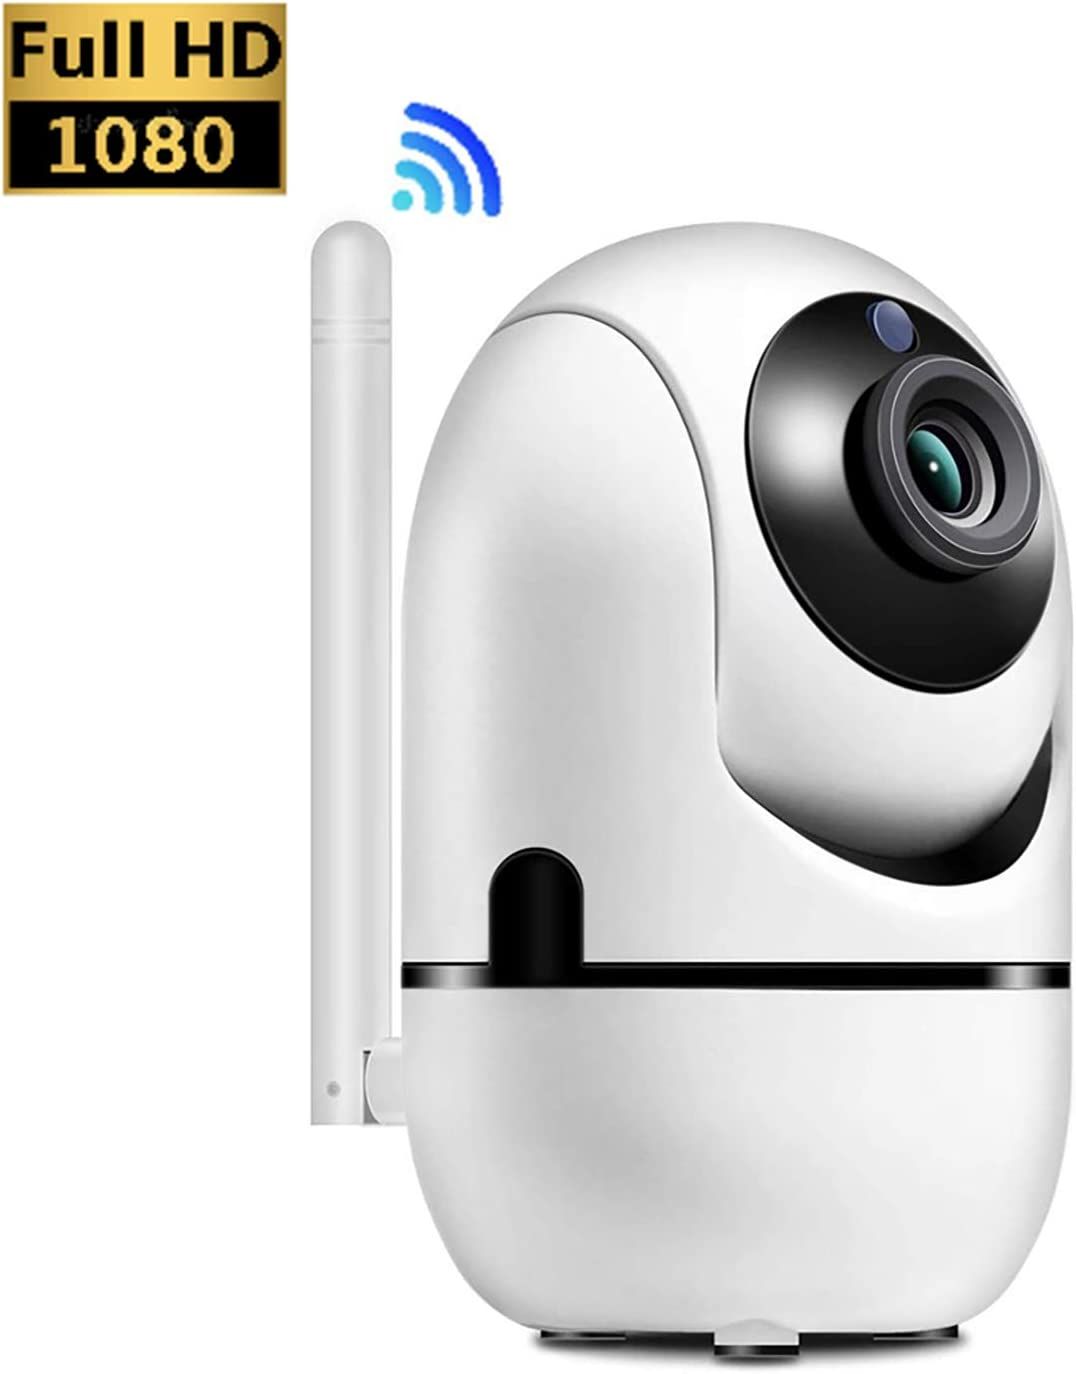 WiFi Camera,HALUM IP Wireless Security Camera System FHD Camera with HD Night Vision Two-Way Audio Motion Detection Indoor Camera for Baby Pet Monitor